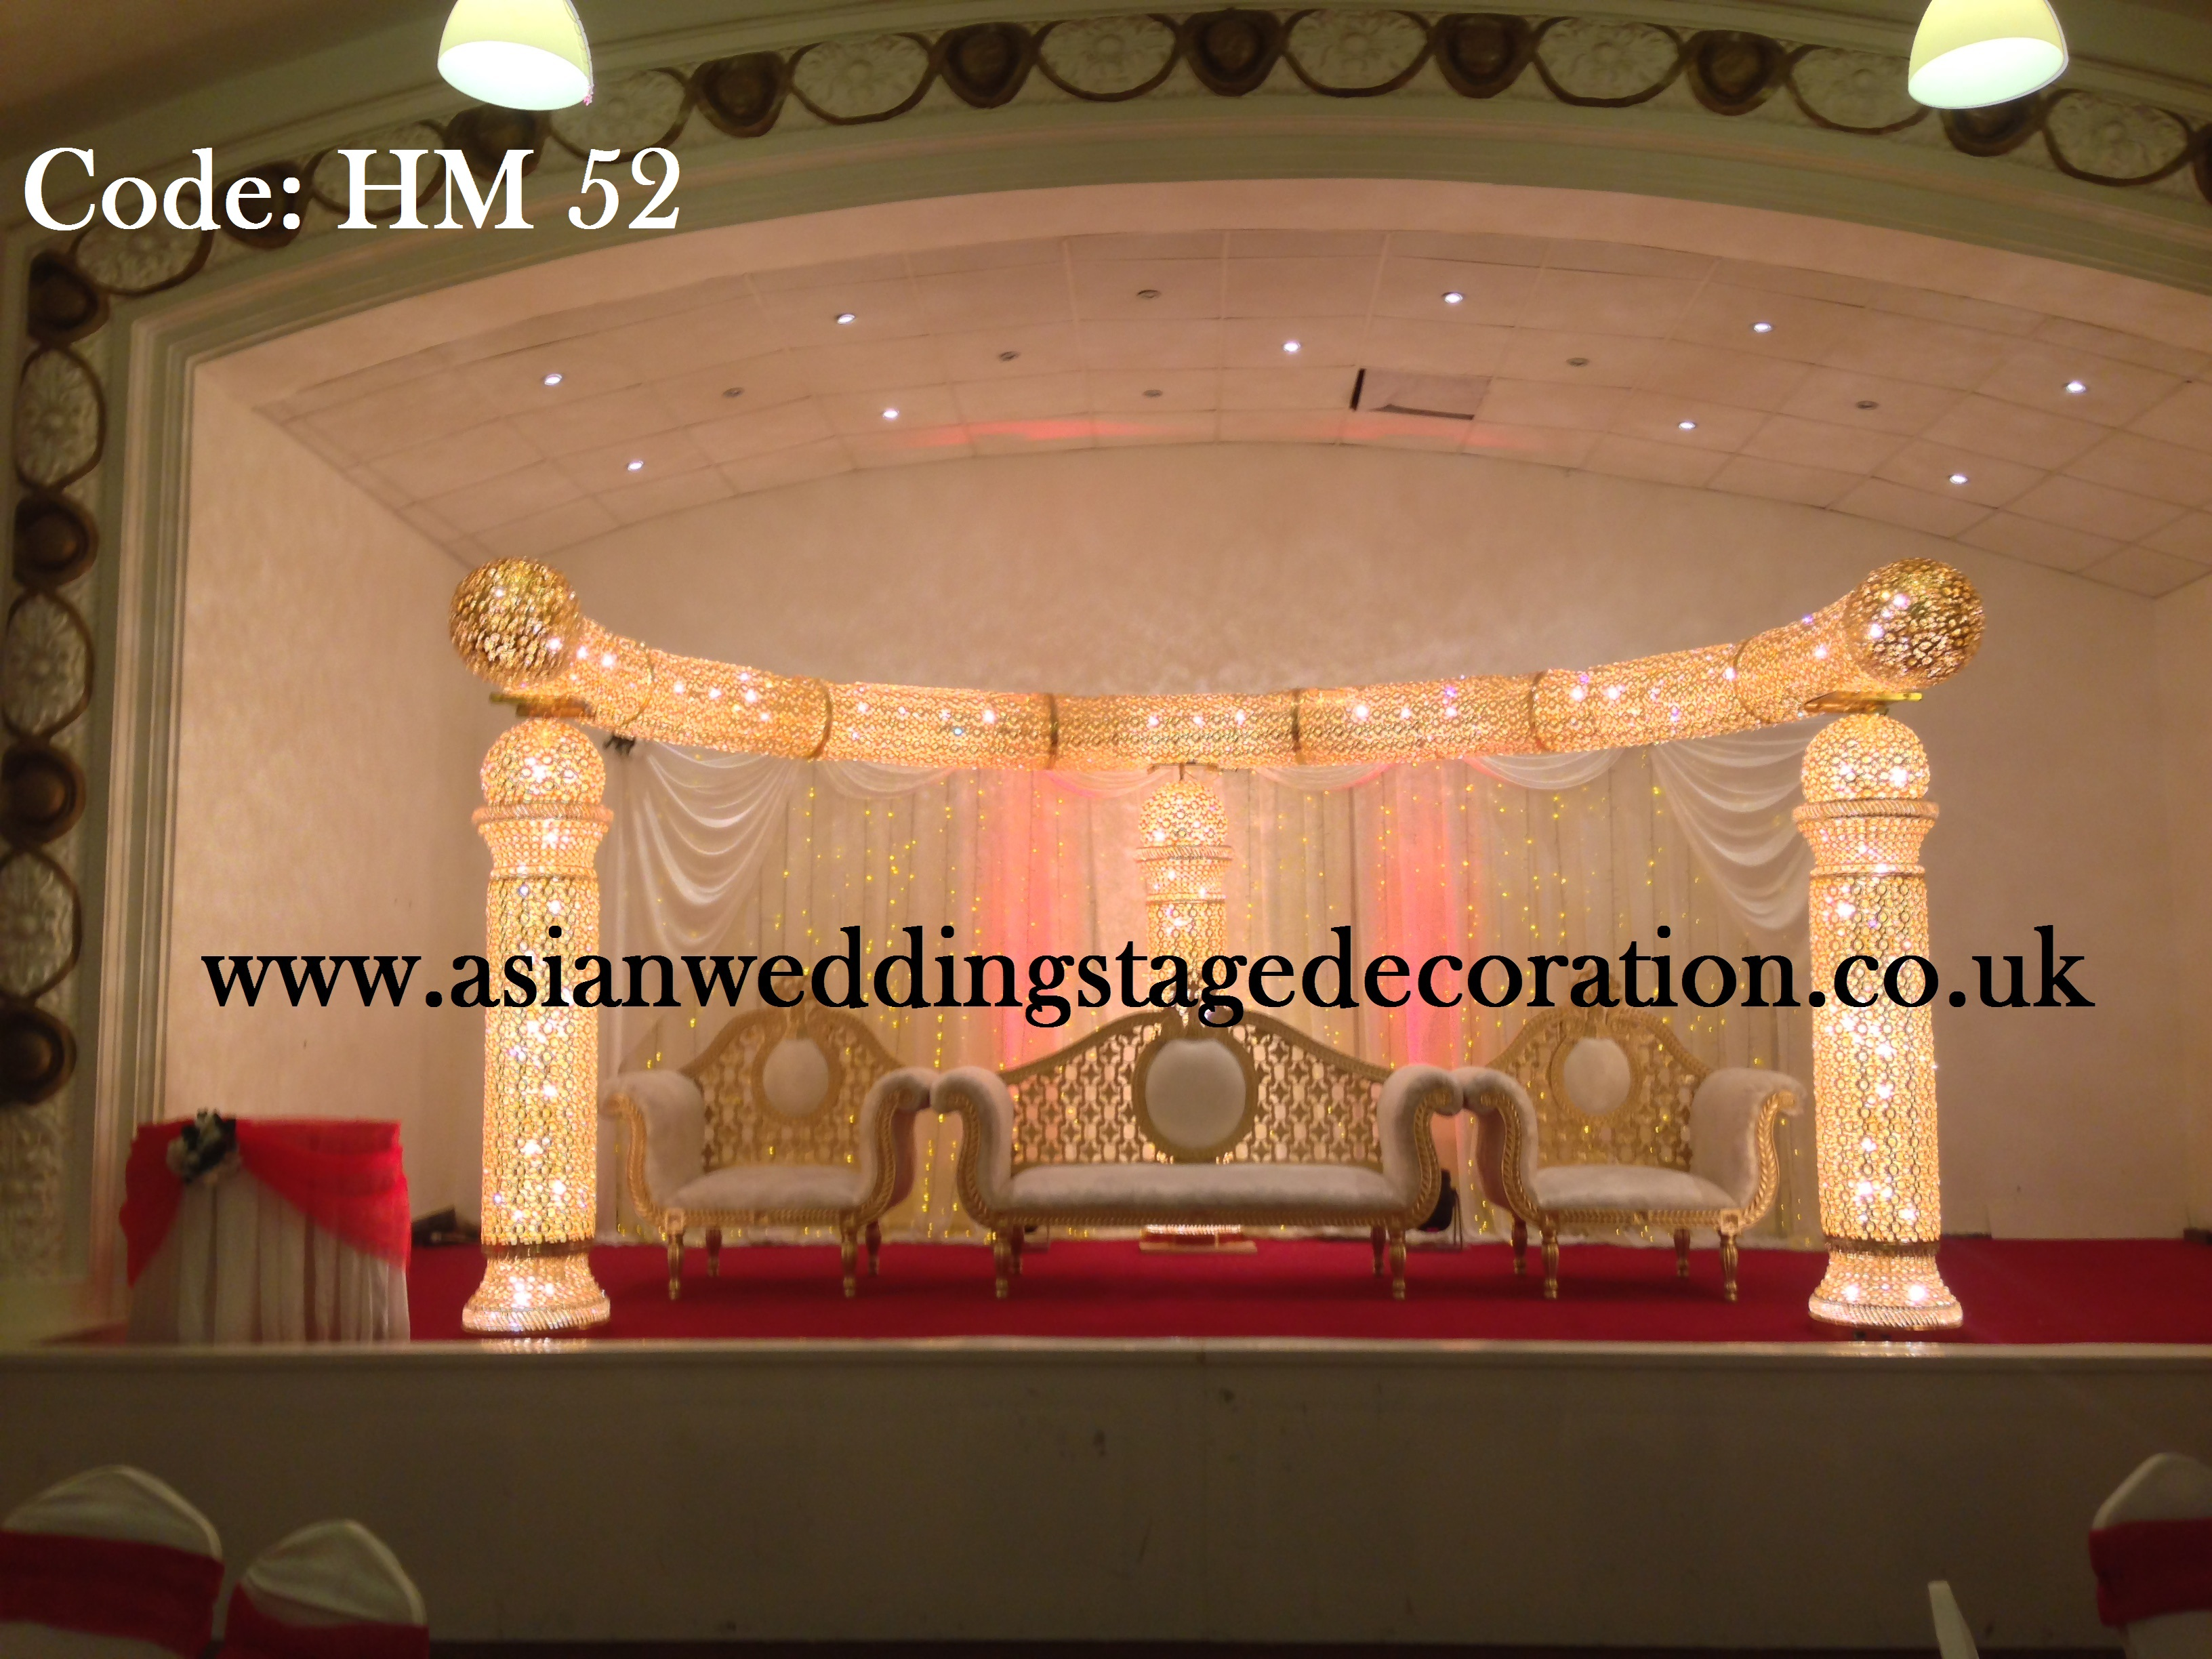 Wedding stages asian wedding stage decoration services for Asian wedding stage decoration london